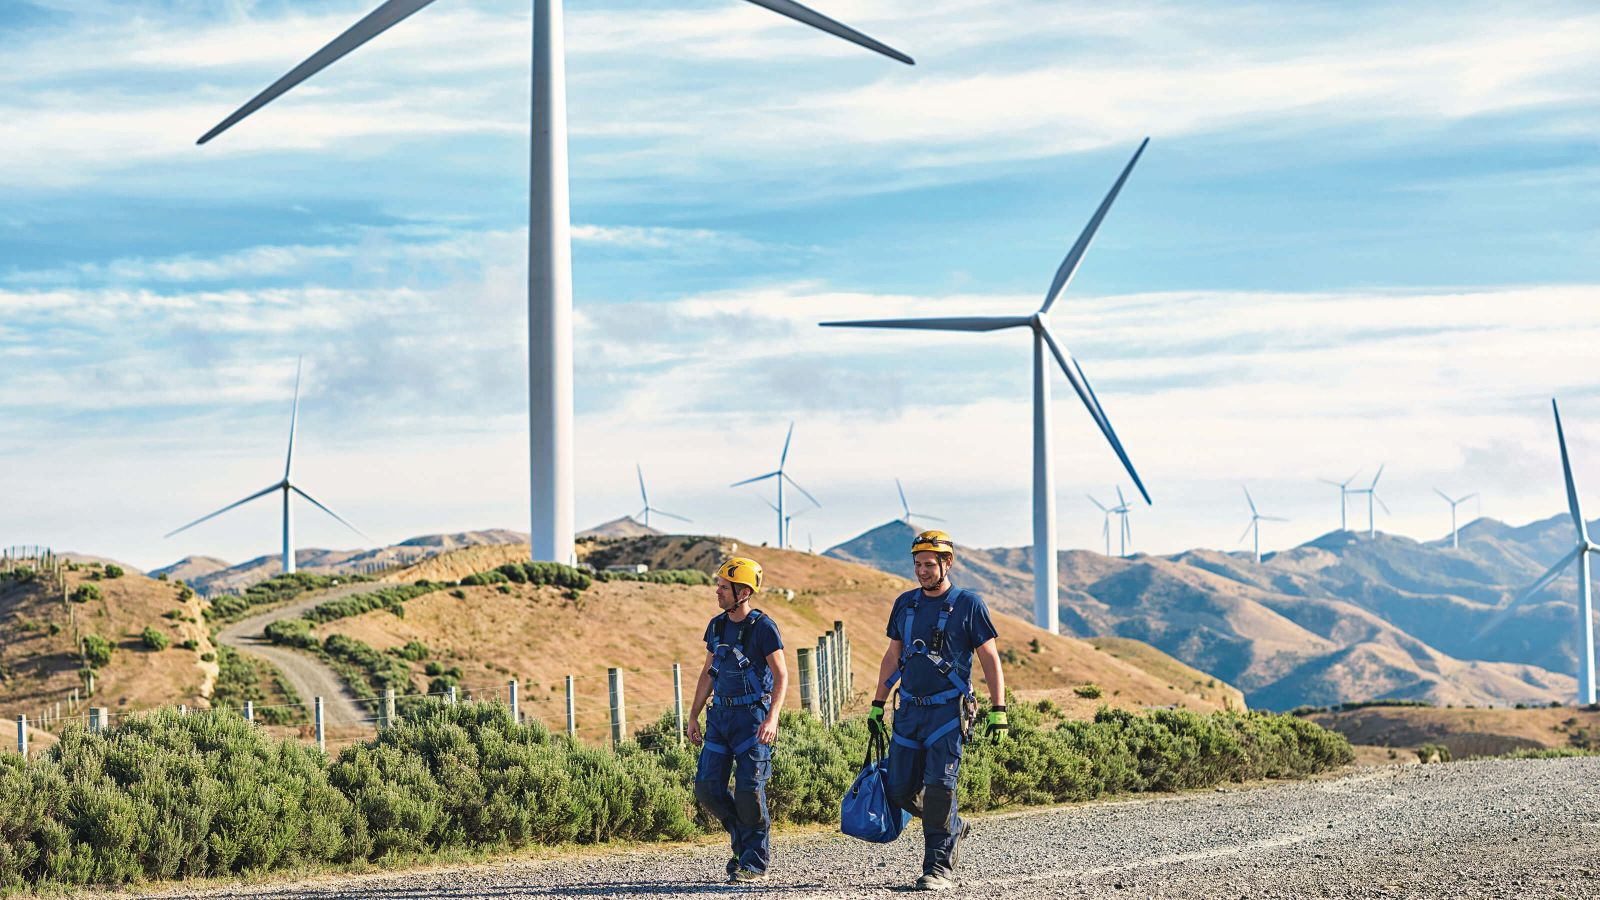 Two people wearing safety harnesses at Makara windfarm